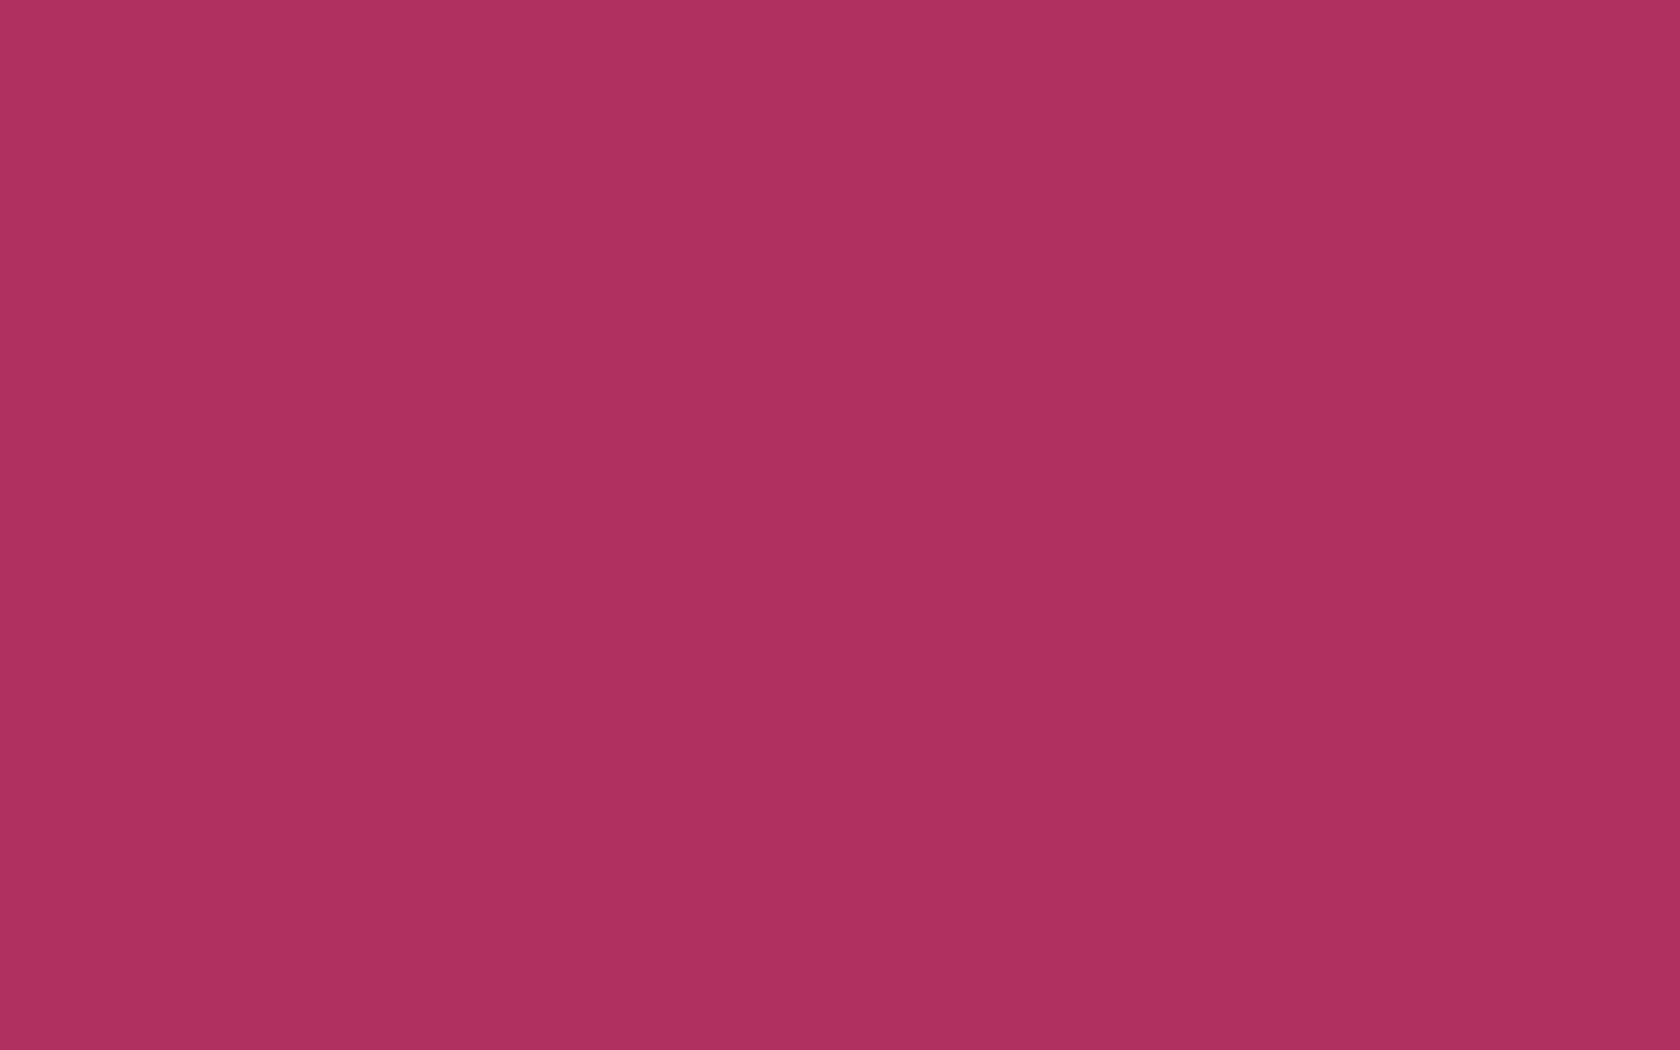 1680x1050 Rich Maroon Solid Color Background